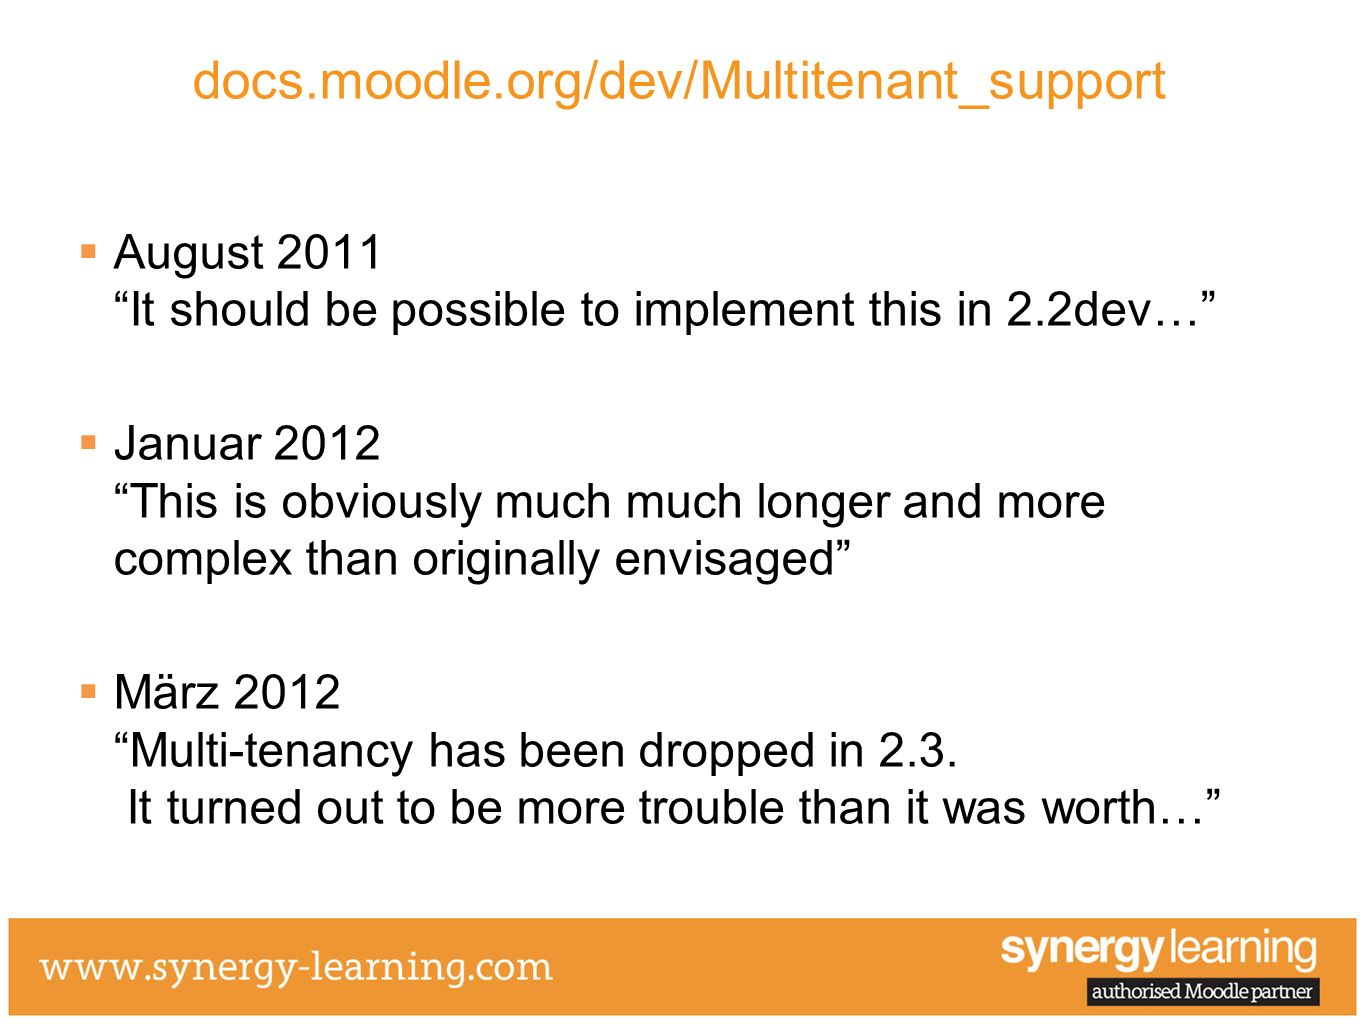 docs.moodle.org/dev/Multitenant_support